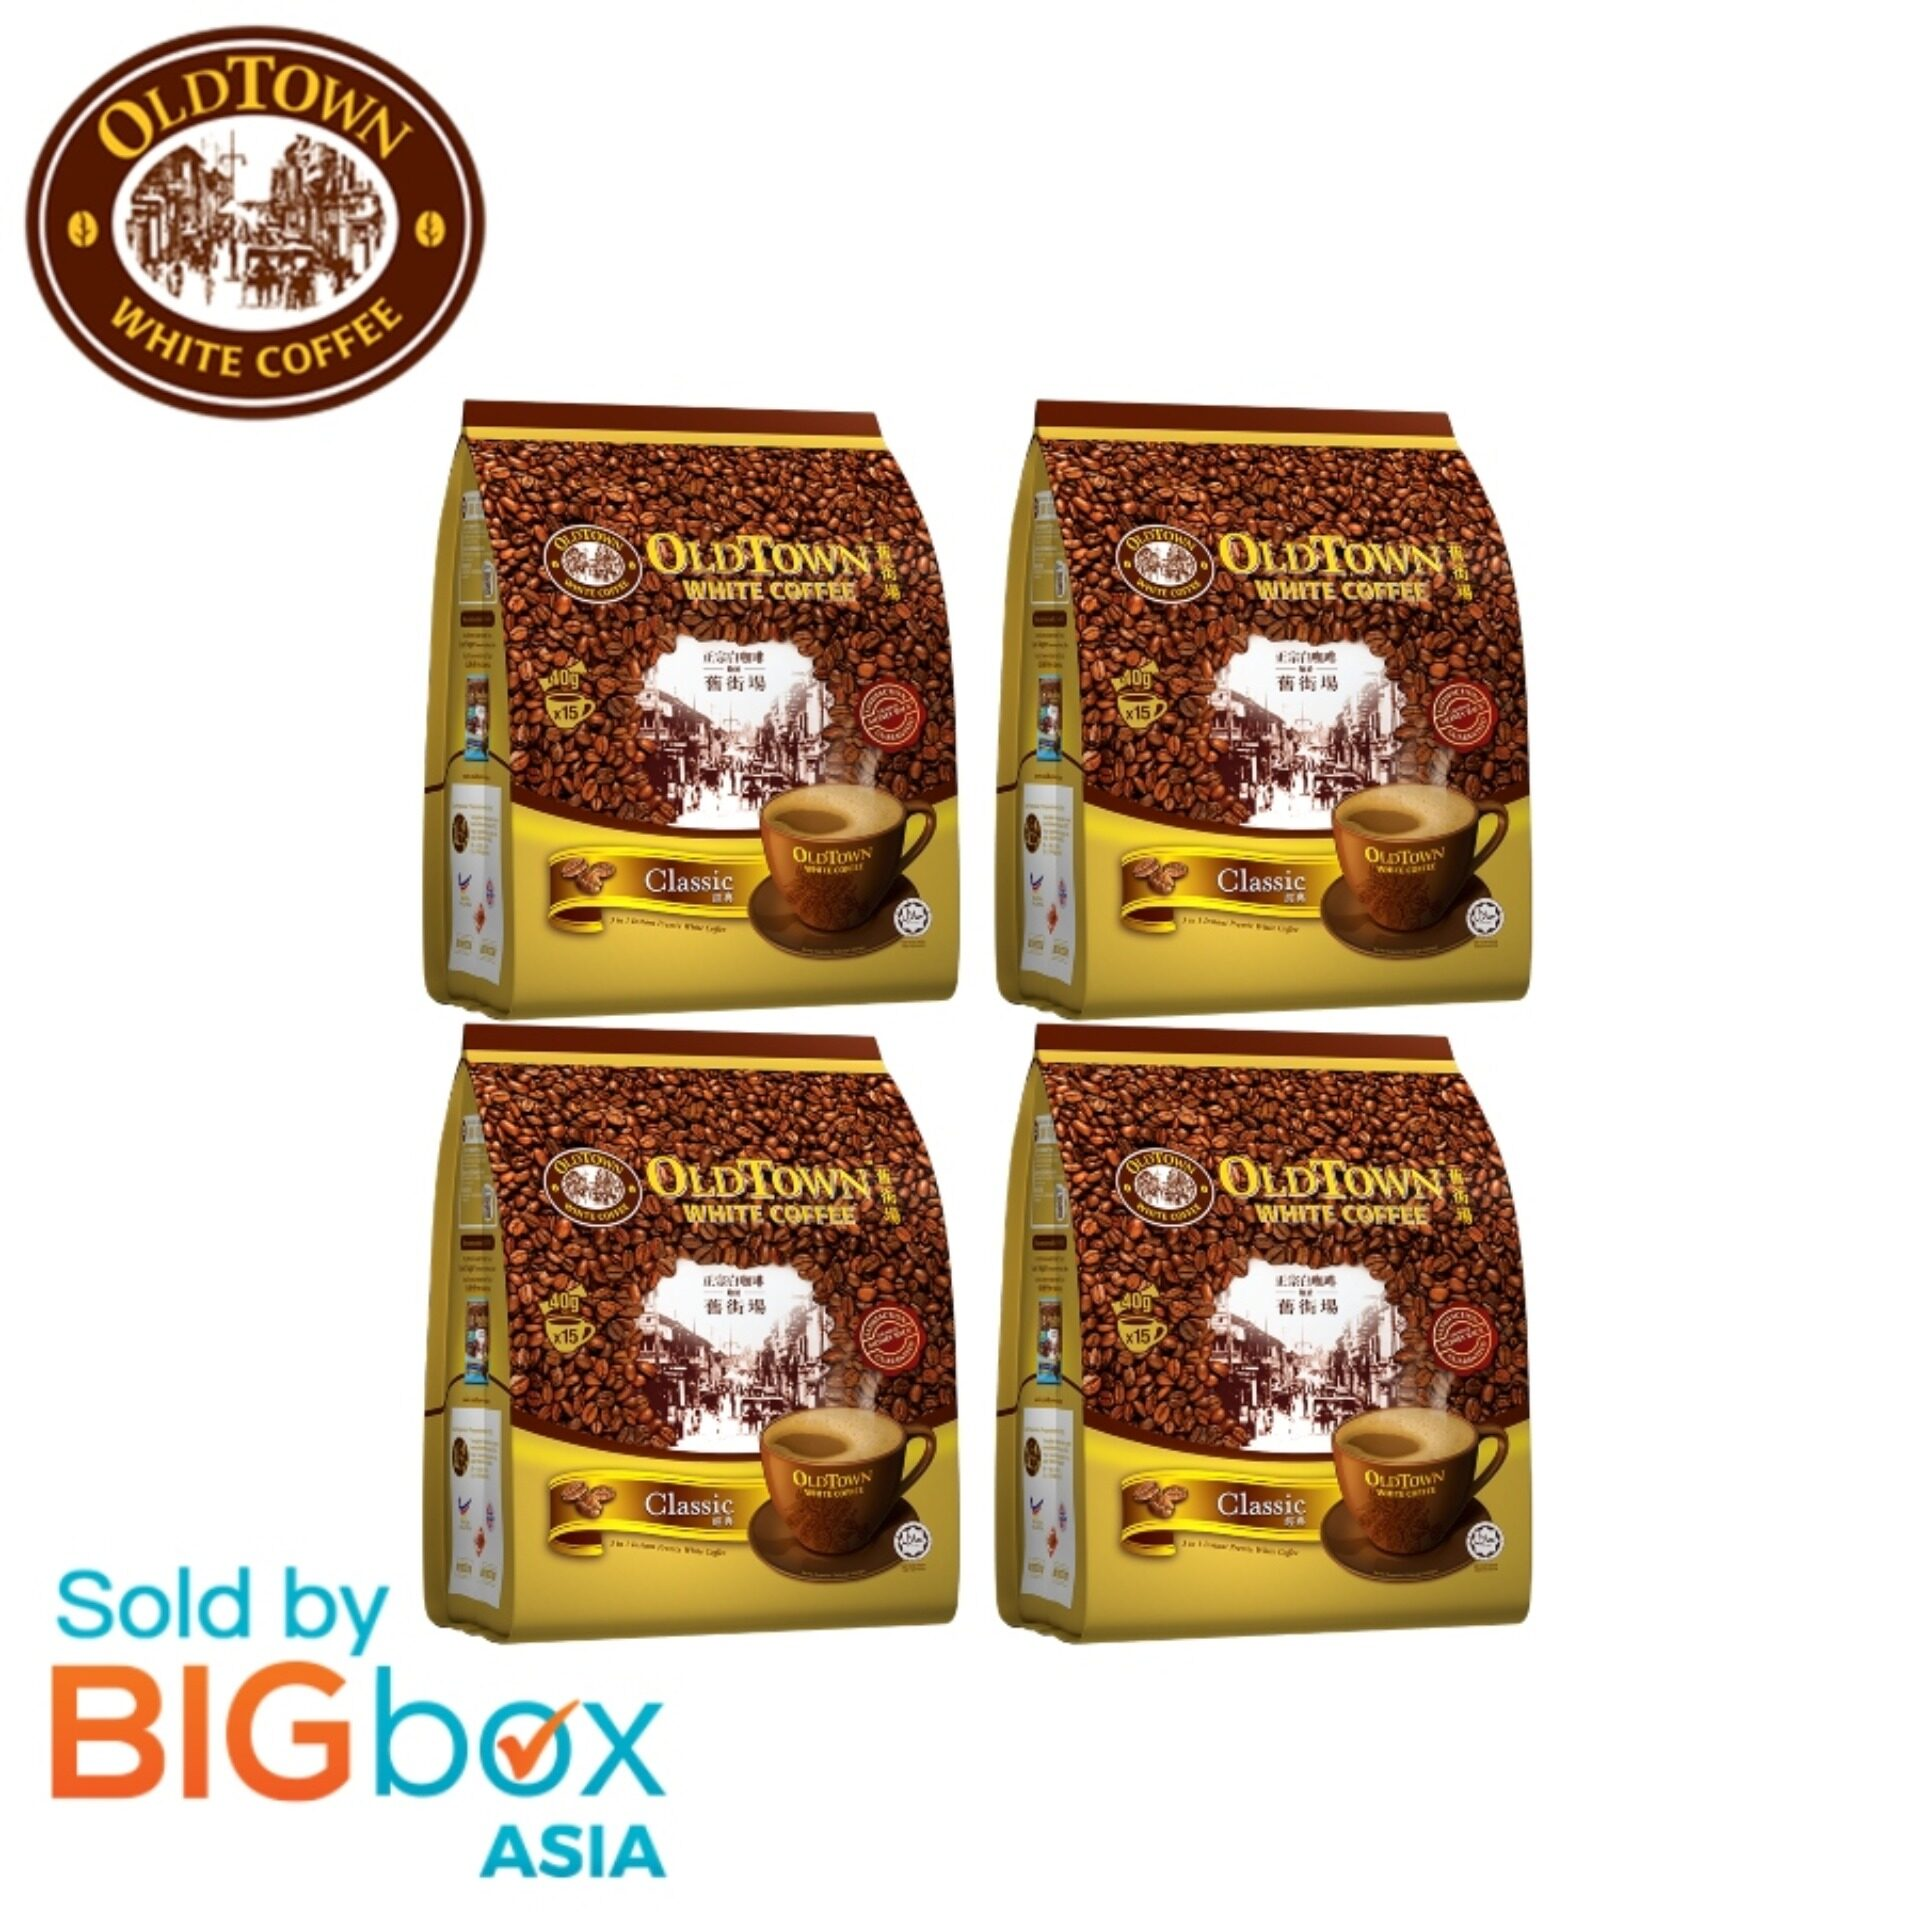 [BUNDLE 4] OLDTOWN White Coffee 3in1 570g (38g x 15s) - Classic